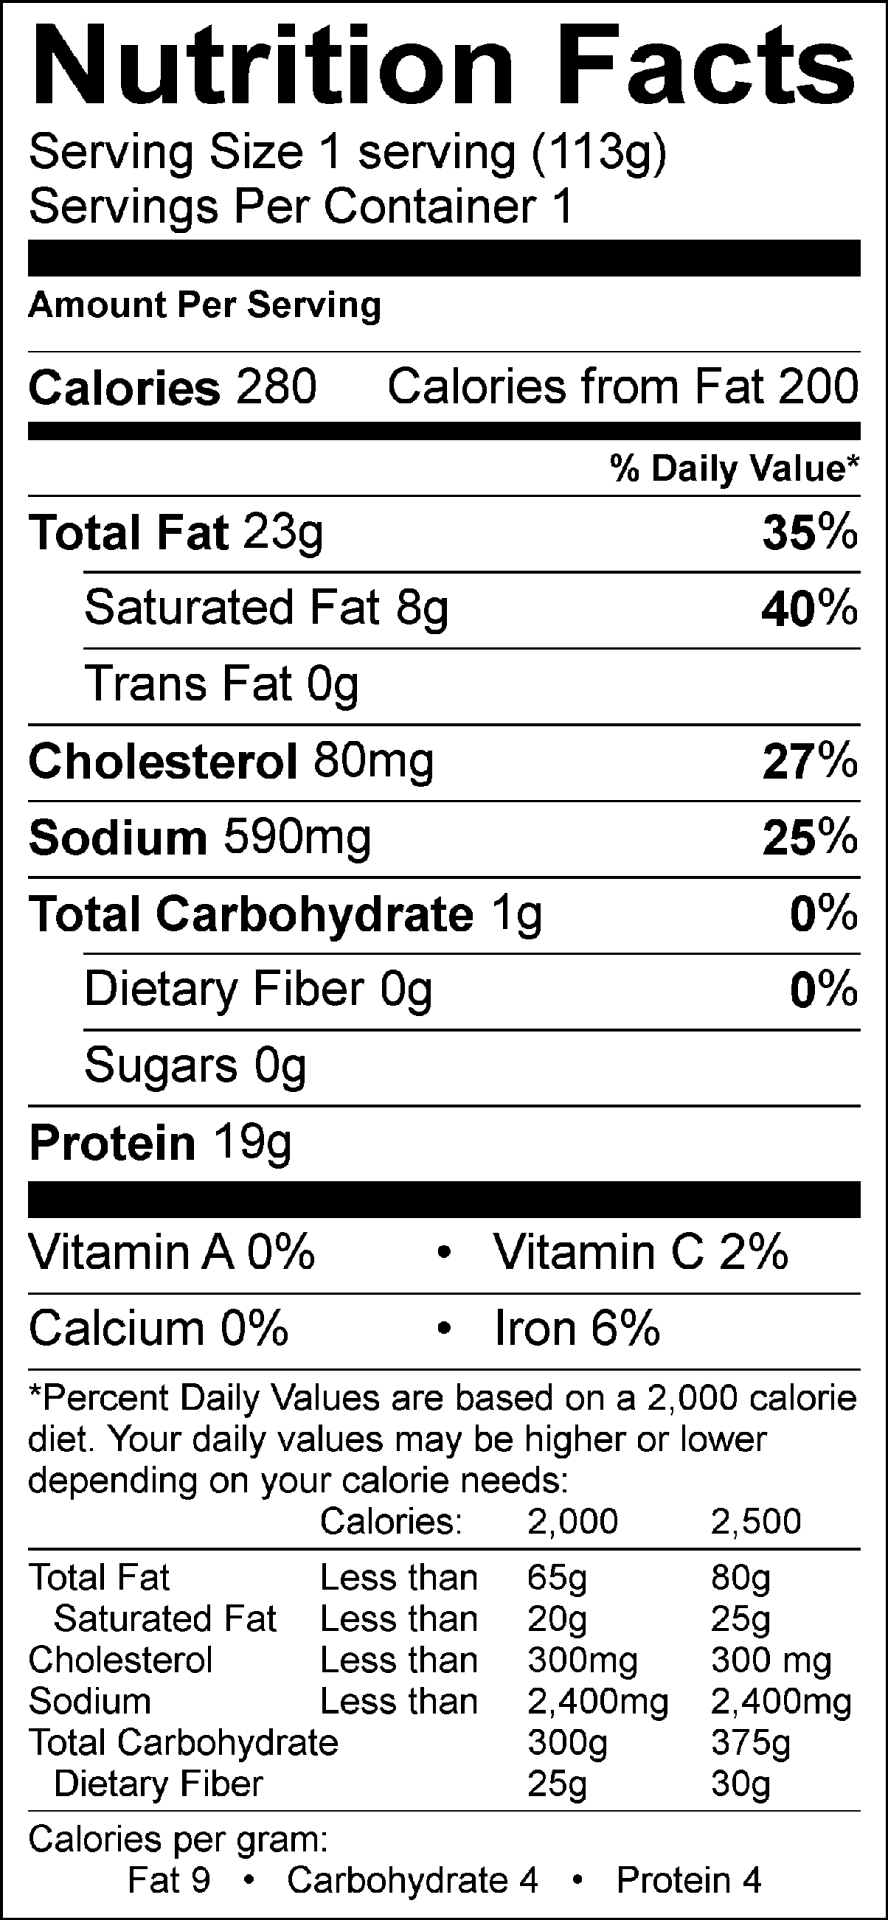 German Bratwurst Nutrition Facts       Ingredients : pork, salt, spices    Does not contain:  added water, sugar, corn syrup, fillers, or preservatives